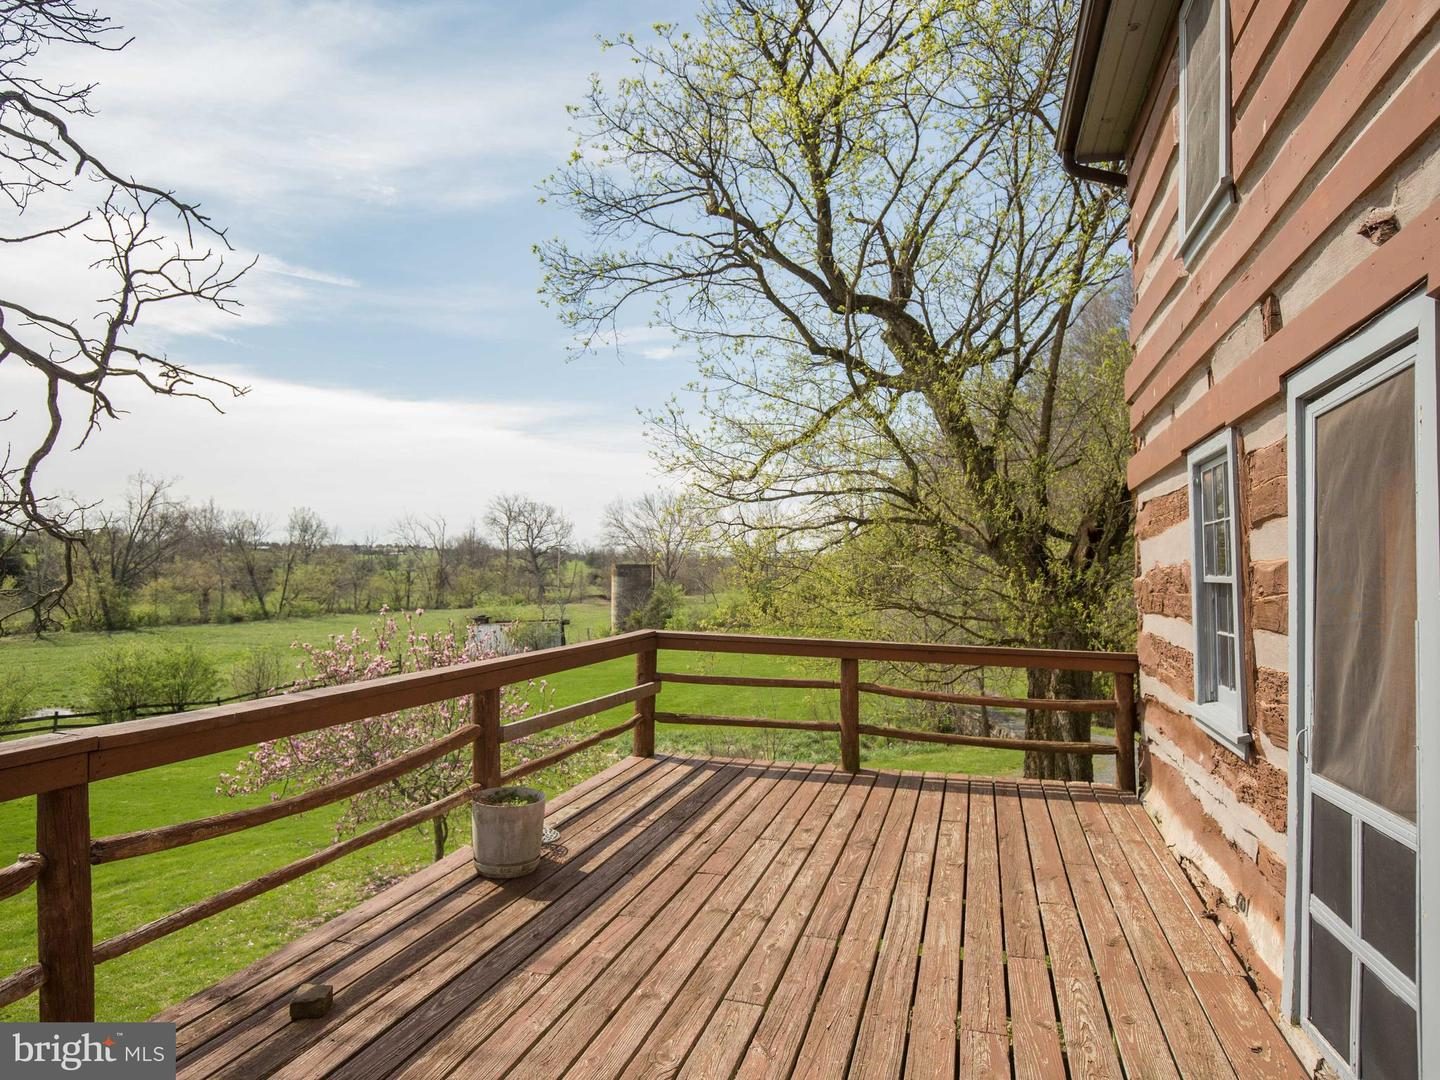 Additional photo for property listing at 841 Shady Creek Rd Clear Brook, Virginia 22624 United States